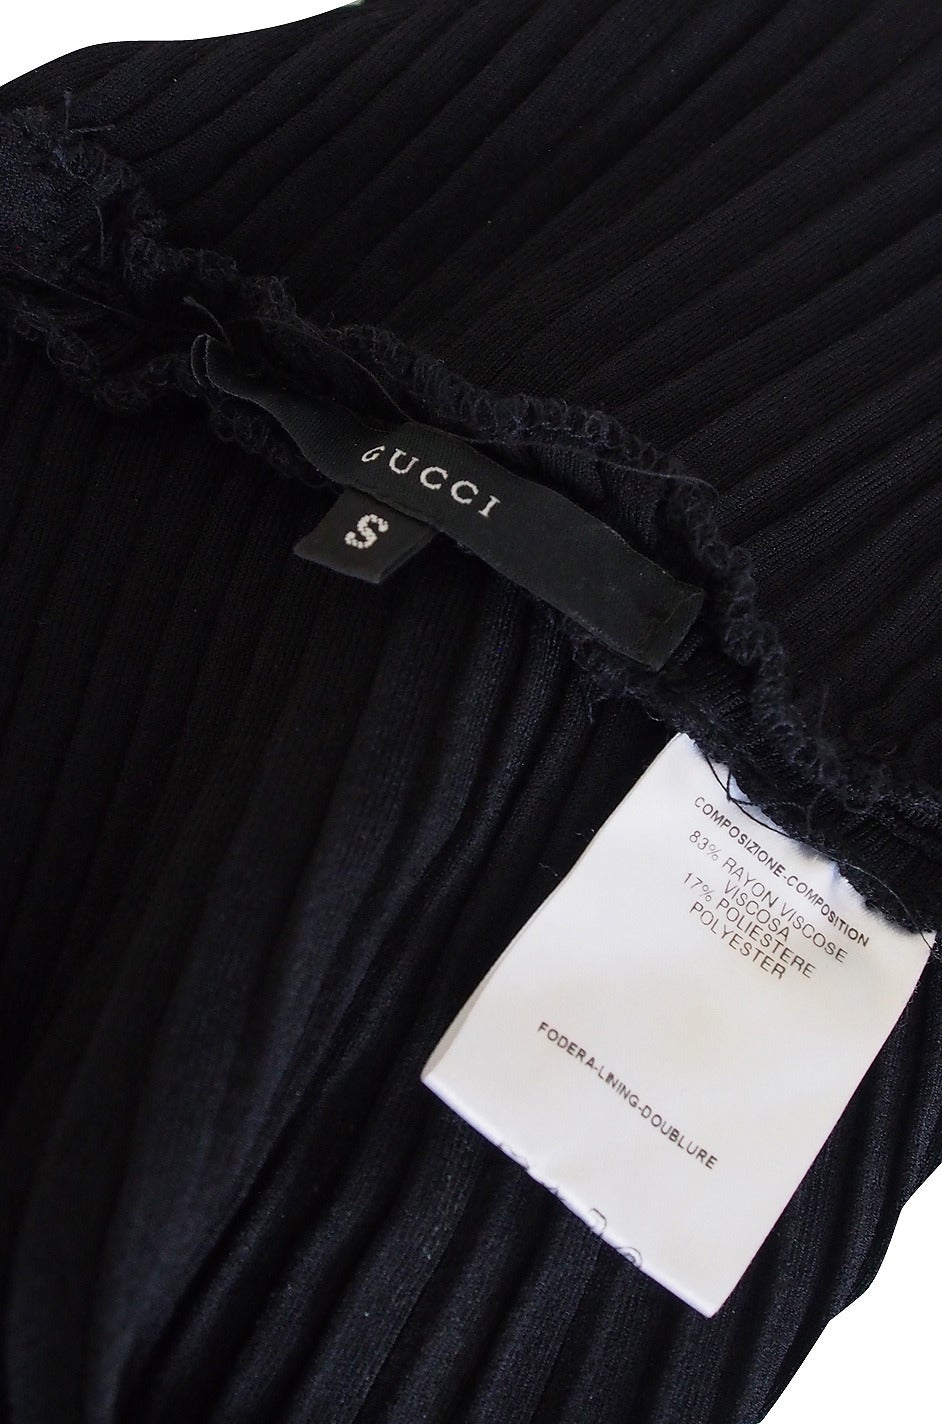 circa 1996 Tom Ford for Gucci Black Halter Knit Top 6